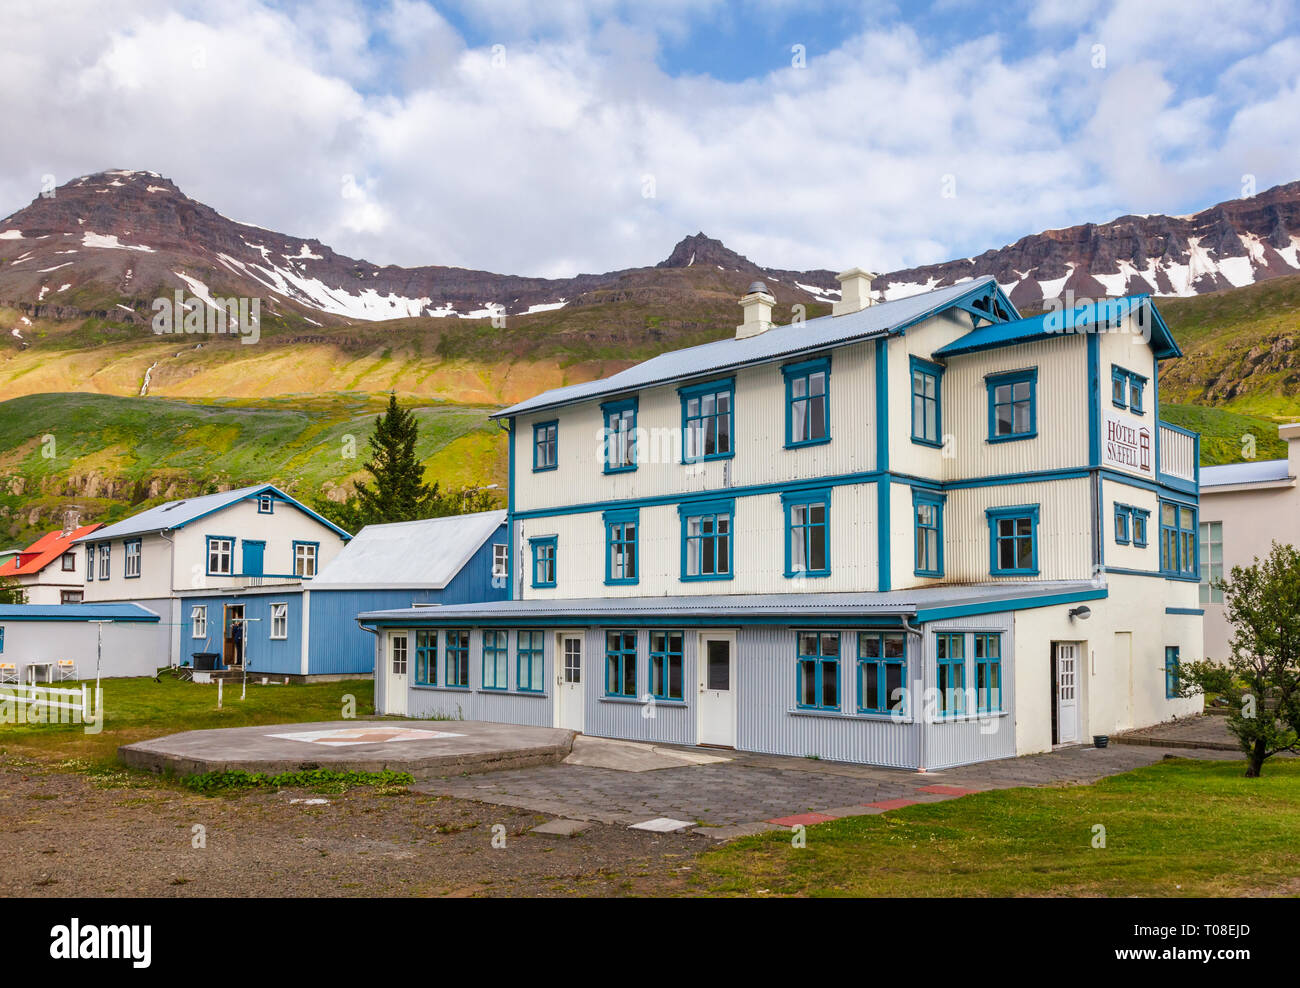 Seydisfjordur, Iceland - Aug 1, 2015: White and blue building of former post office (1908) now Hotel Snæfell on Austurvegur street - Stock Image